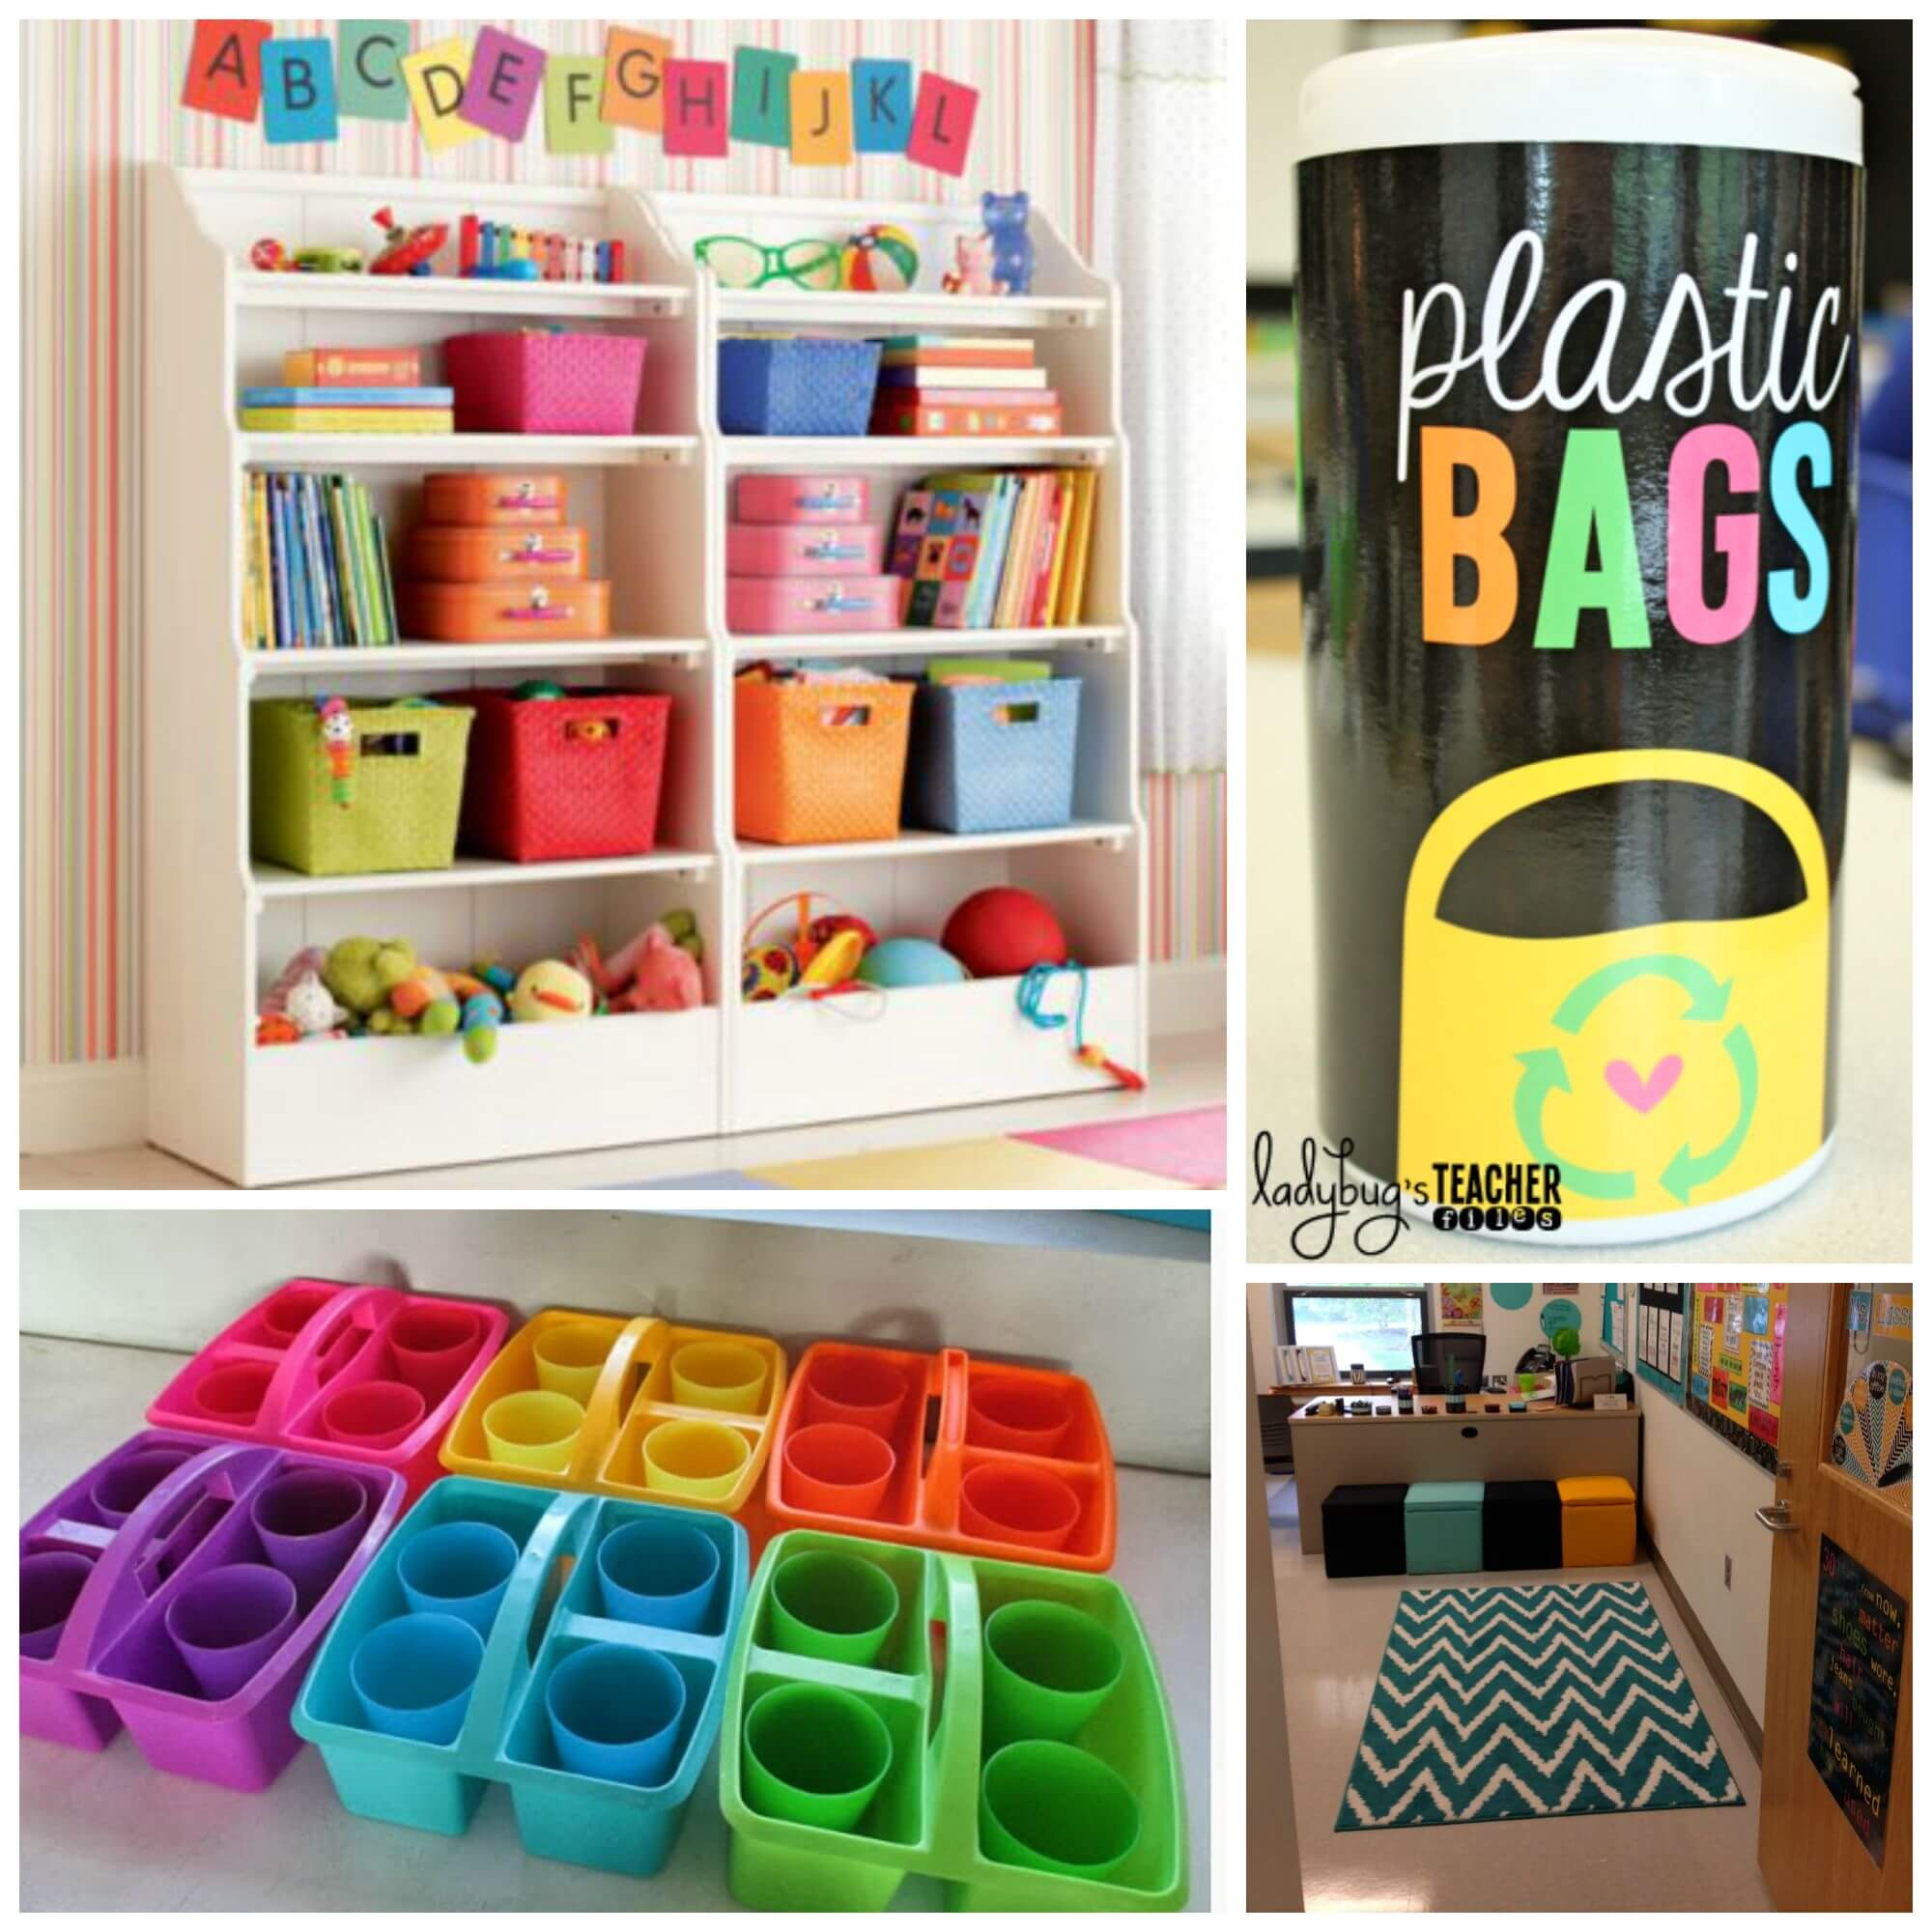 Pictures Of Classroom Decoration Ideas ~ Inspiring classroom decoration ideas playdough to plato